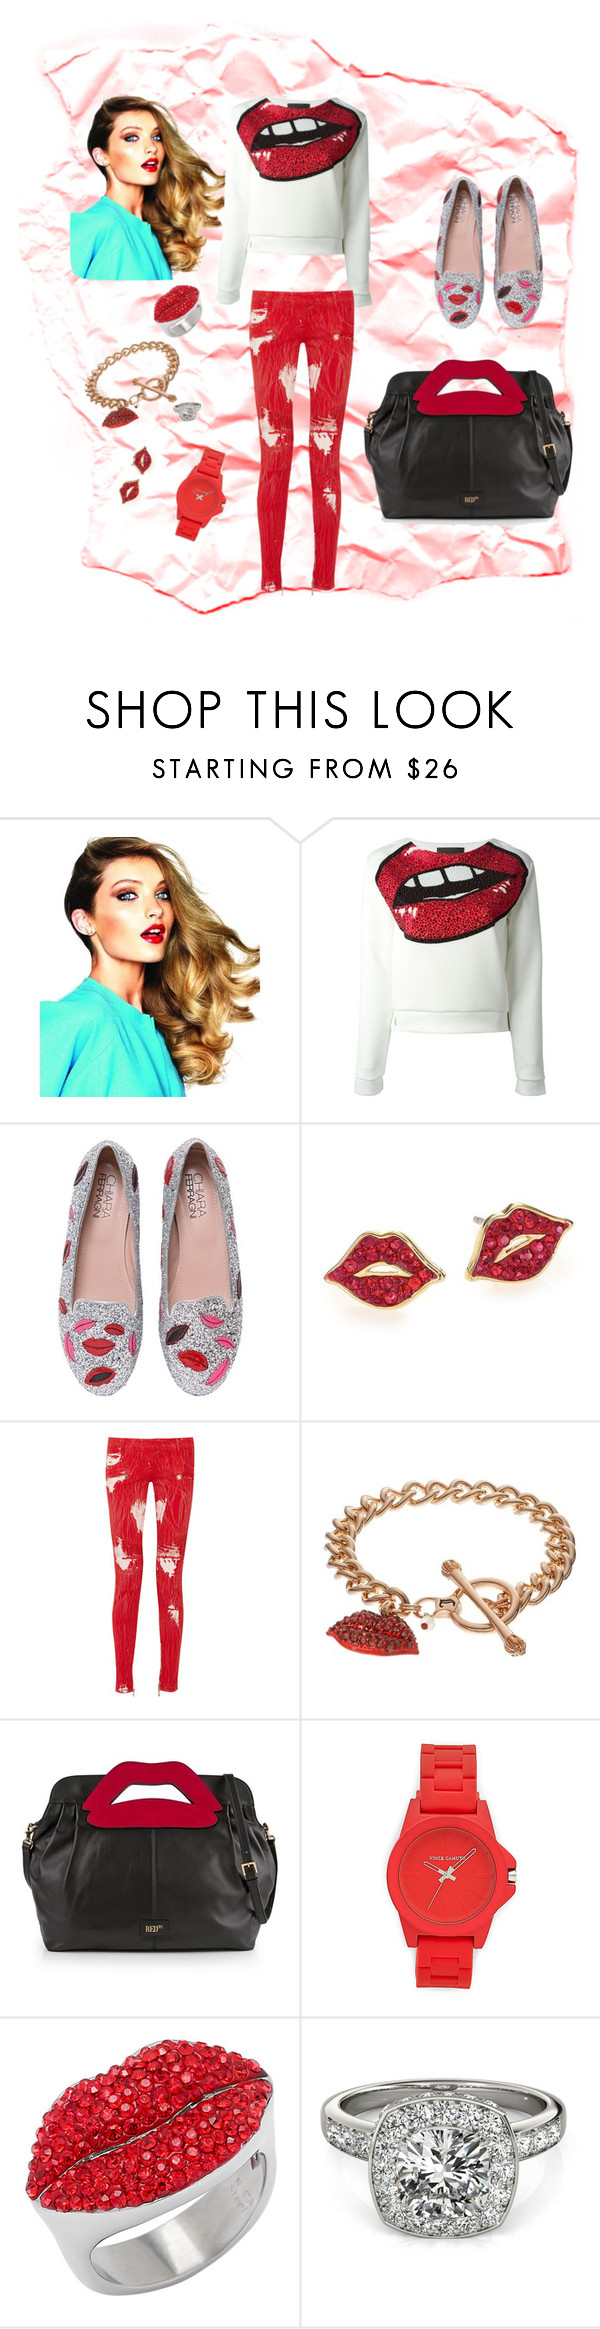 """""""Untitled #80"""" by penny197928 ❤ liked on Polyvore featuring Philipp Plein, Chiara Ferragni, Kate Spade, Balmain, Juicy Couture, RED Valentino, Vince Camuto, Allurez, women's clothing and women's fashion"""